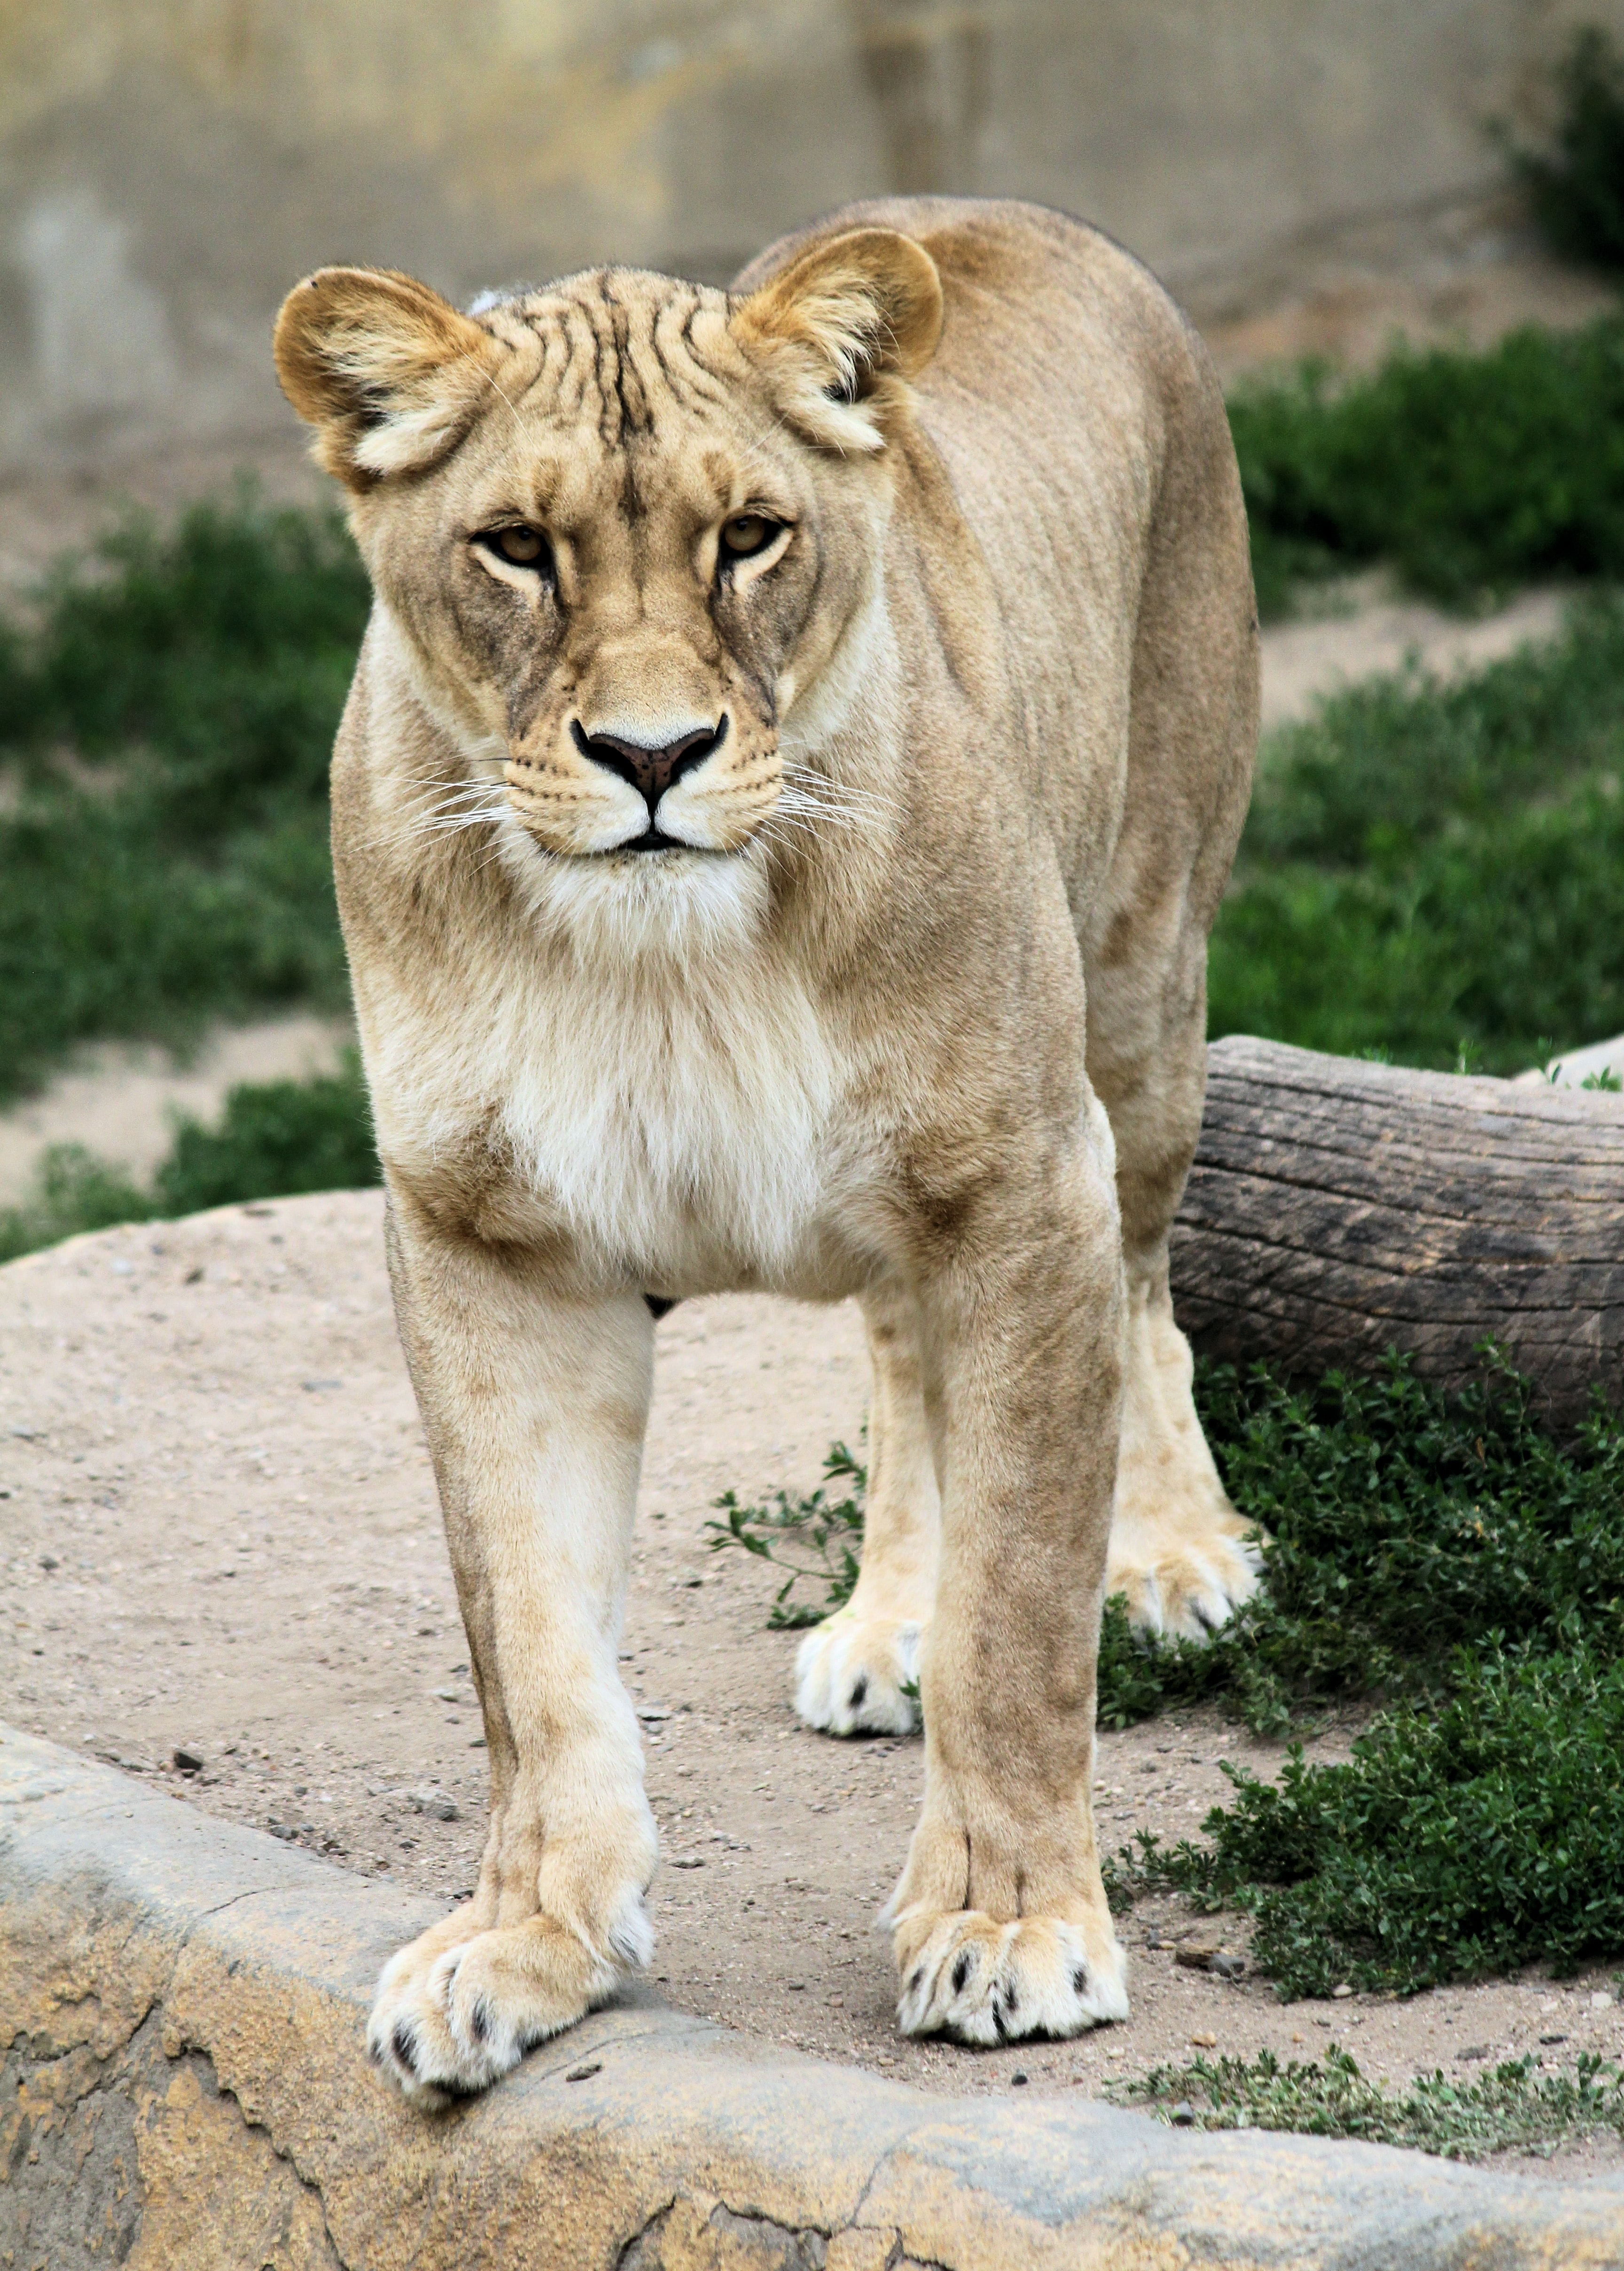 141411 download wallpaper Animals, Lioness, Animal, Predator, Big Cat screensavers and pictures for free